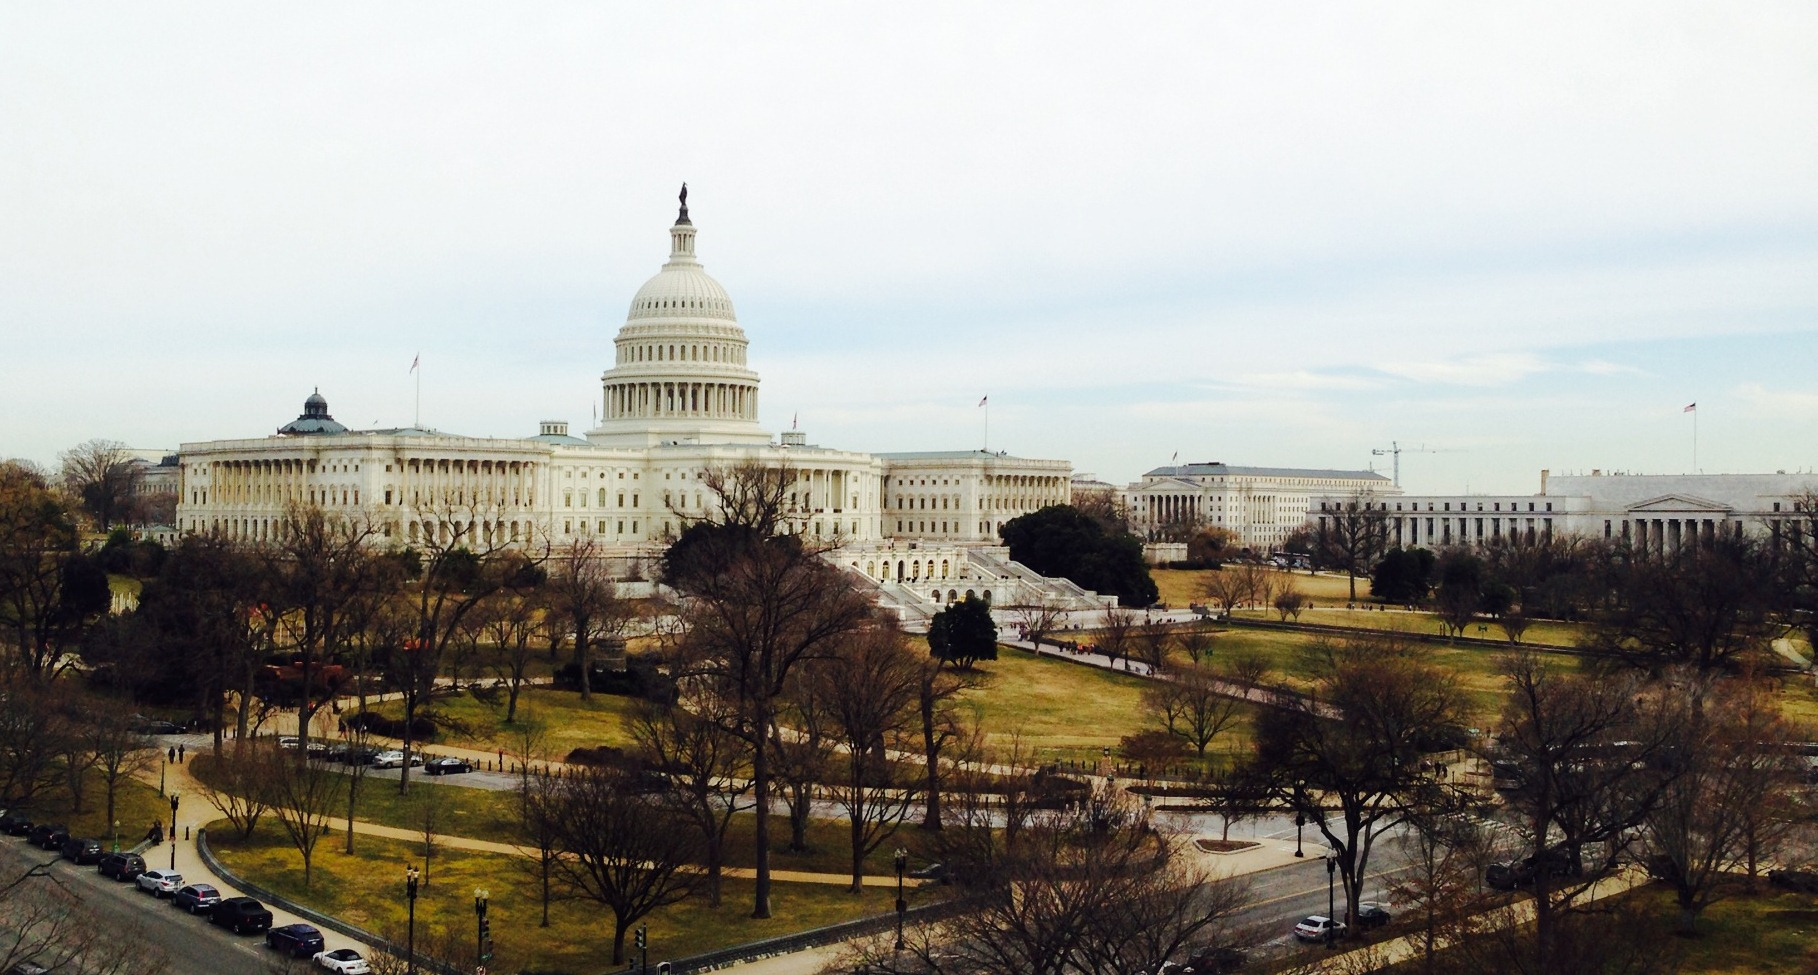 Wide view of the U.S. Capitol Building